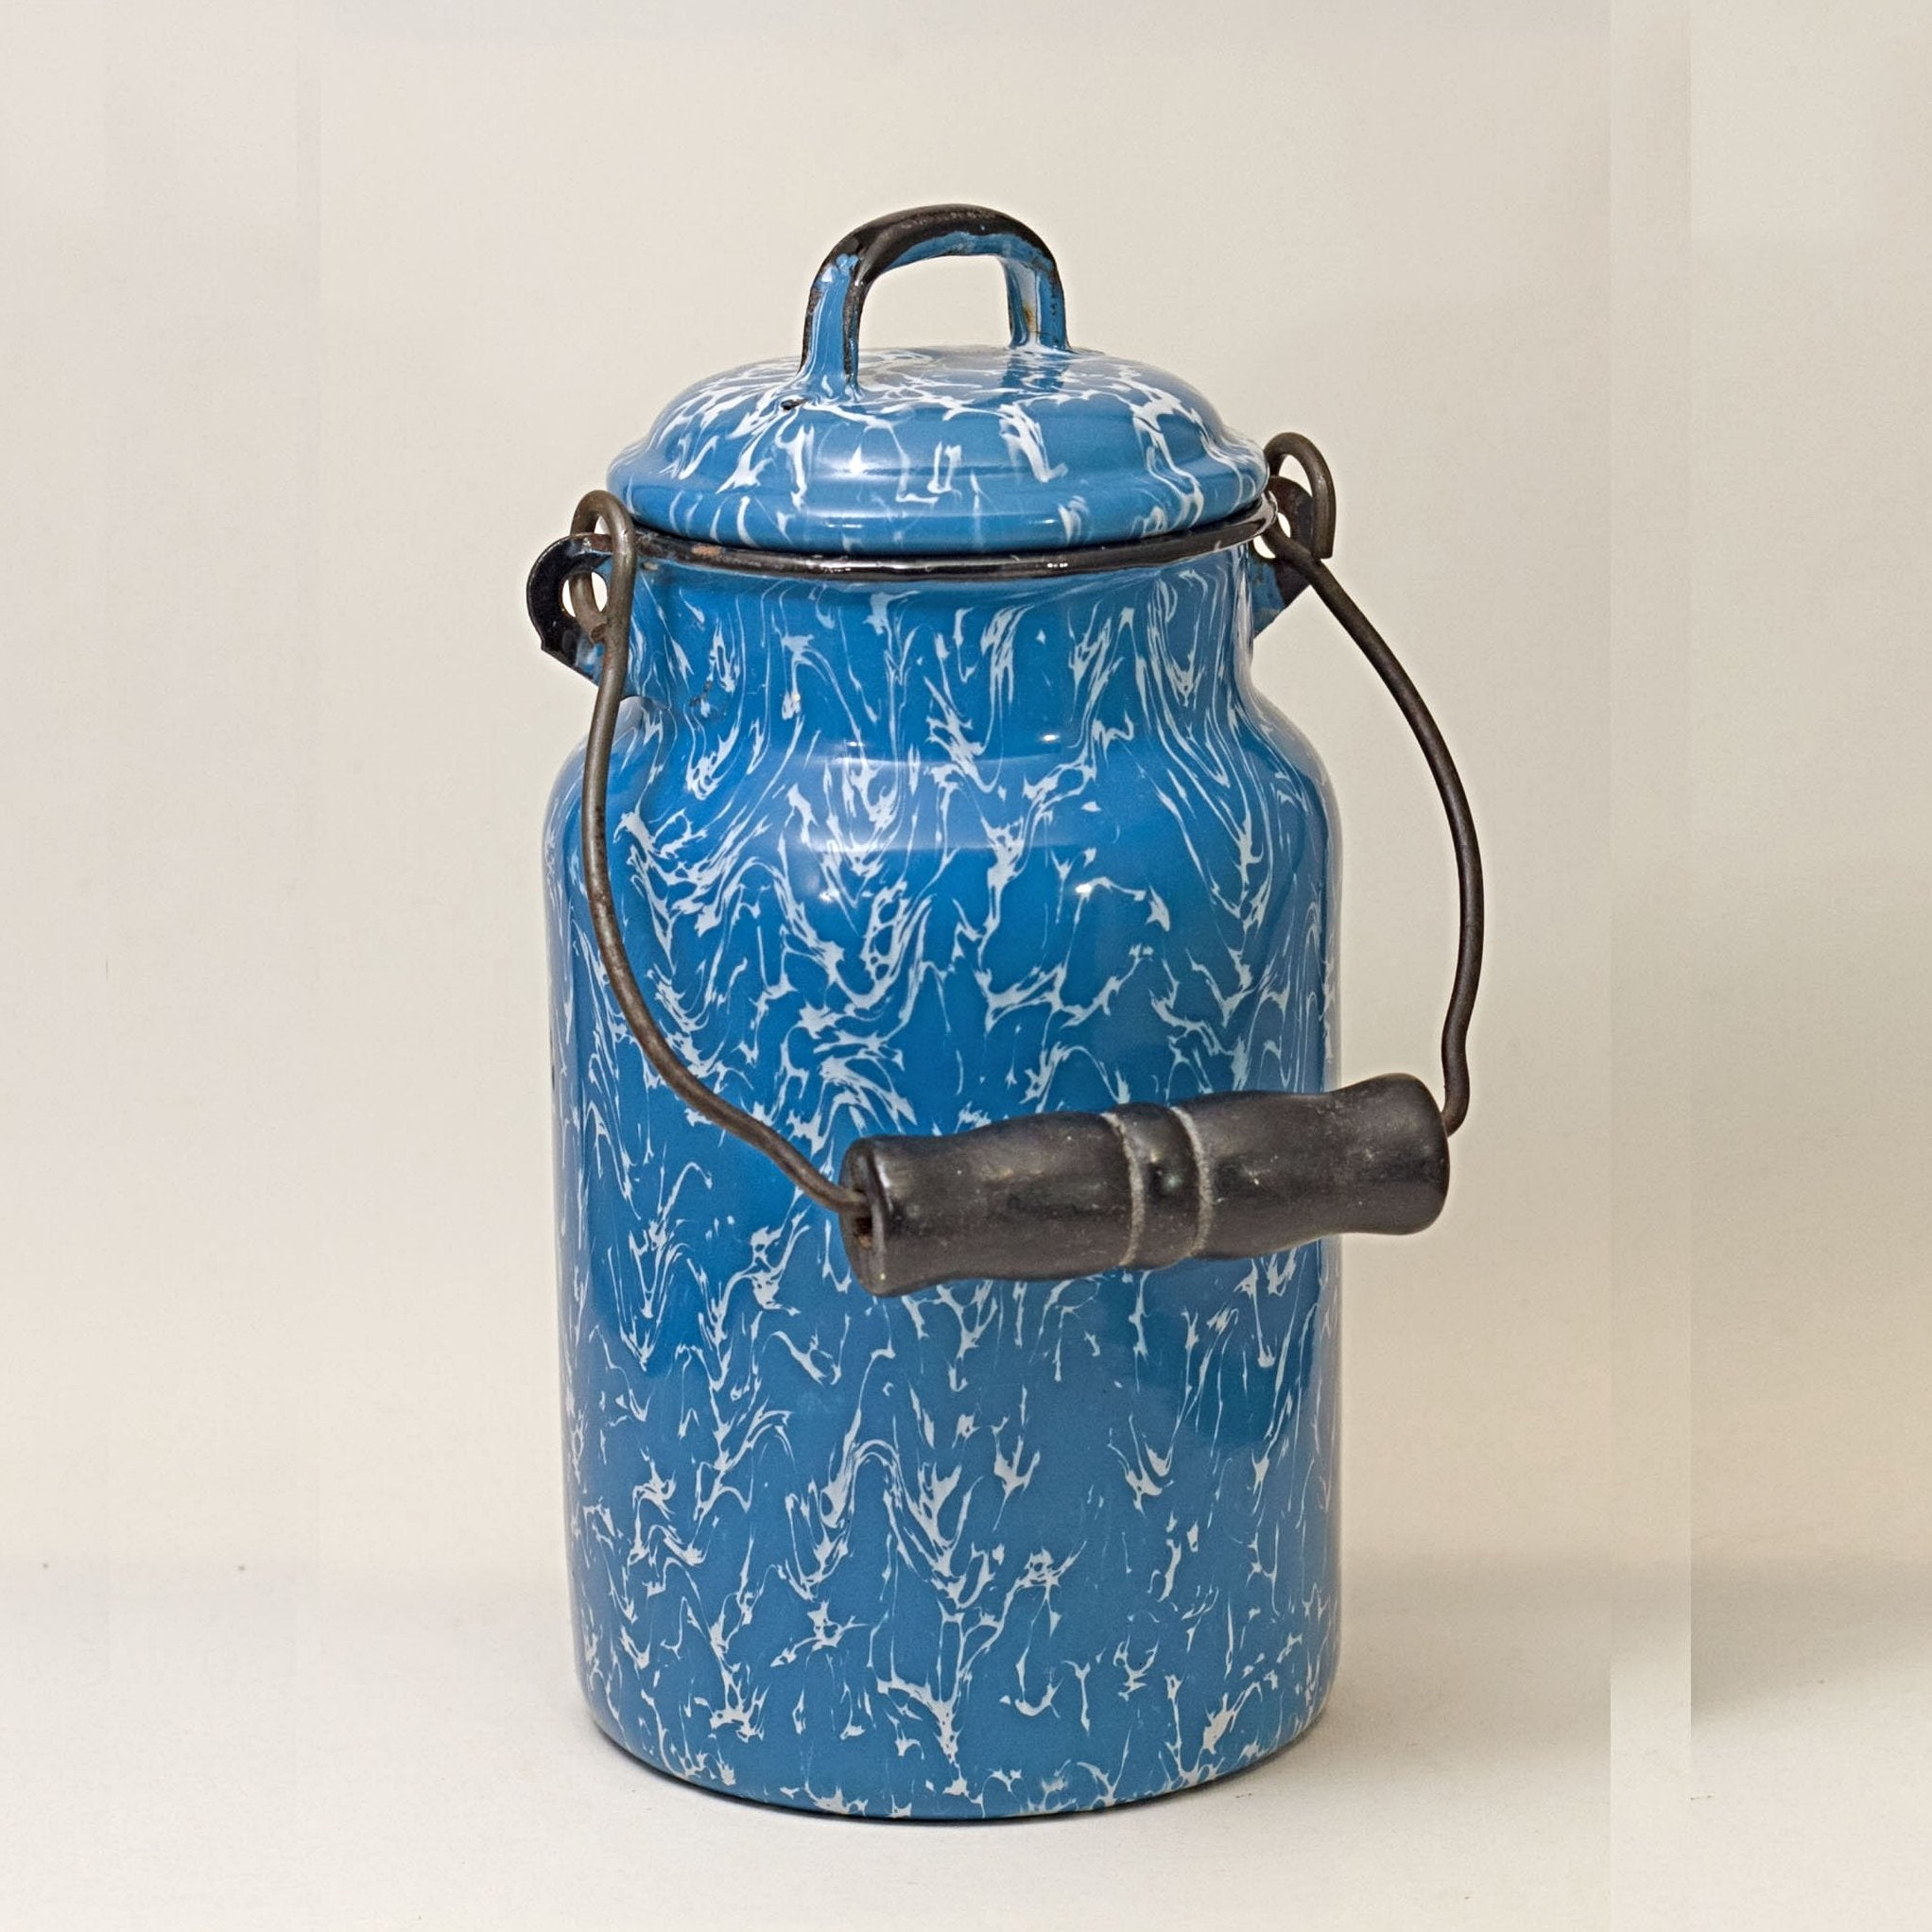 GRANITEWARE CREAM PAIL with Lid Blue and White Swirl Circa 1880 - 1920